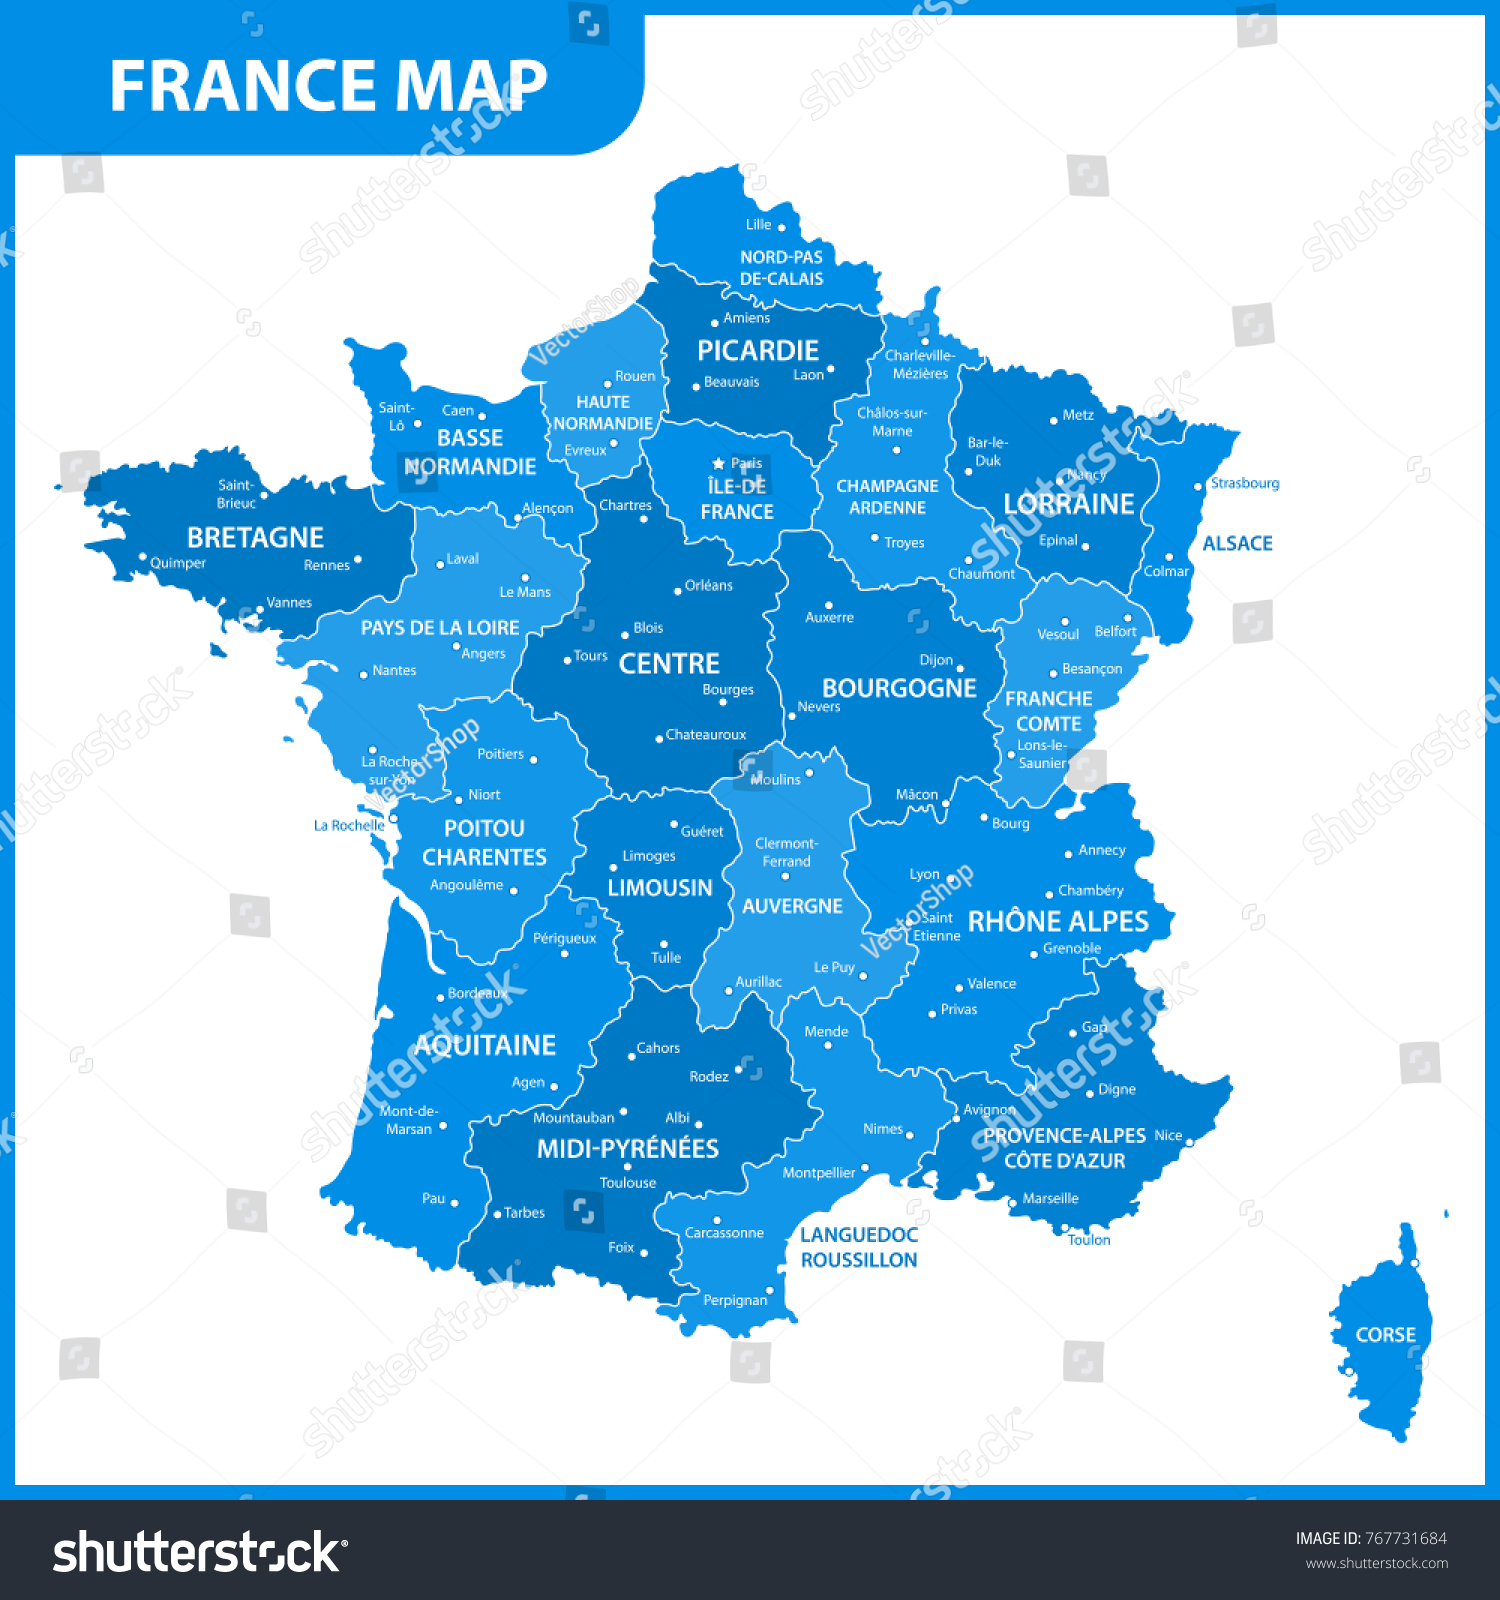 Map Of France Regions And Cities.Detailed Map France Regions States Cities Stock Vector Royalty Free